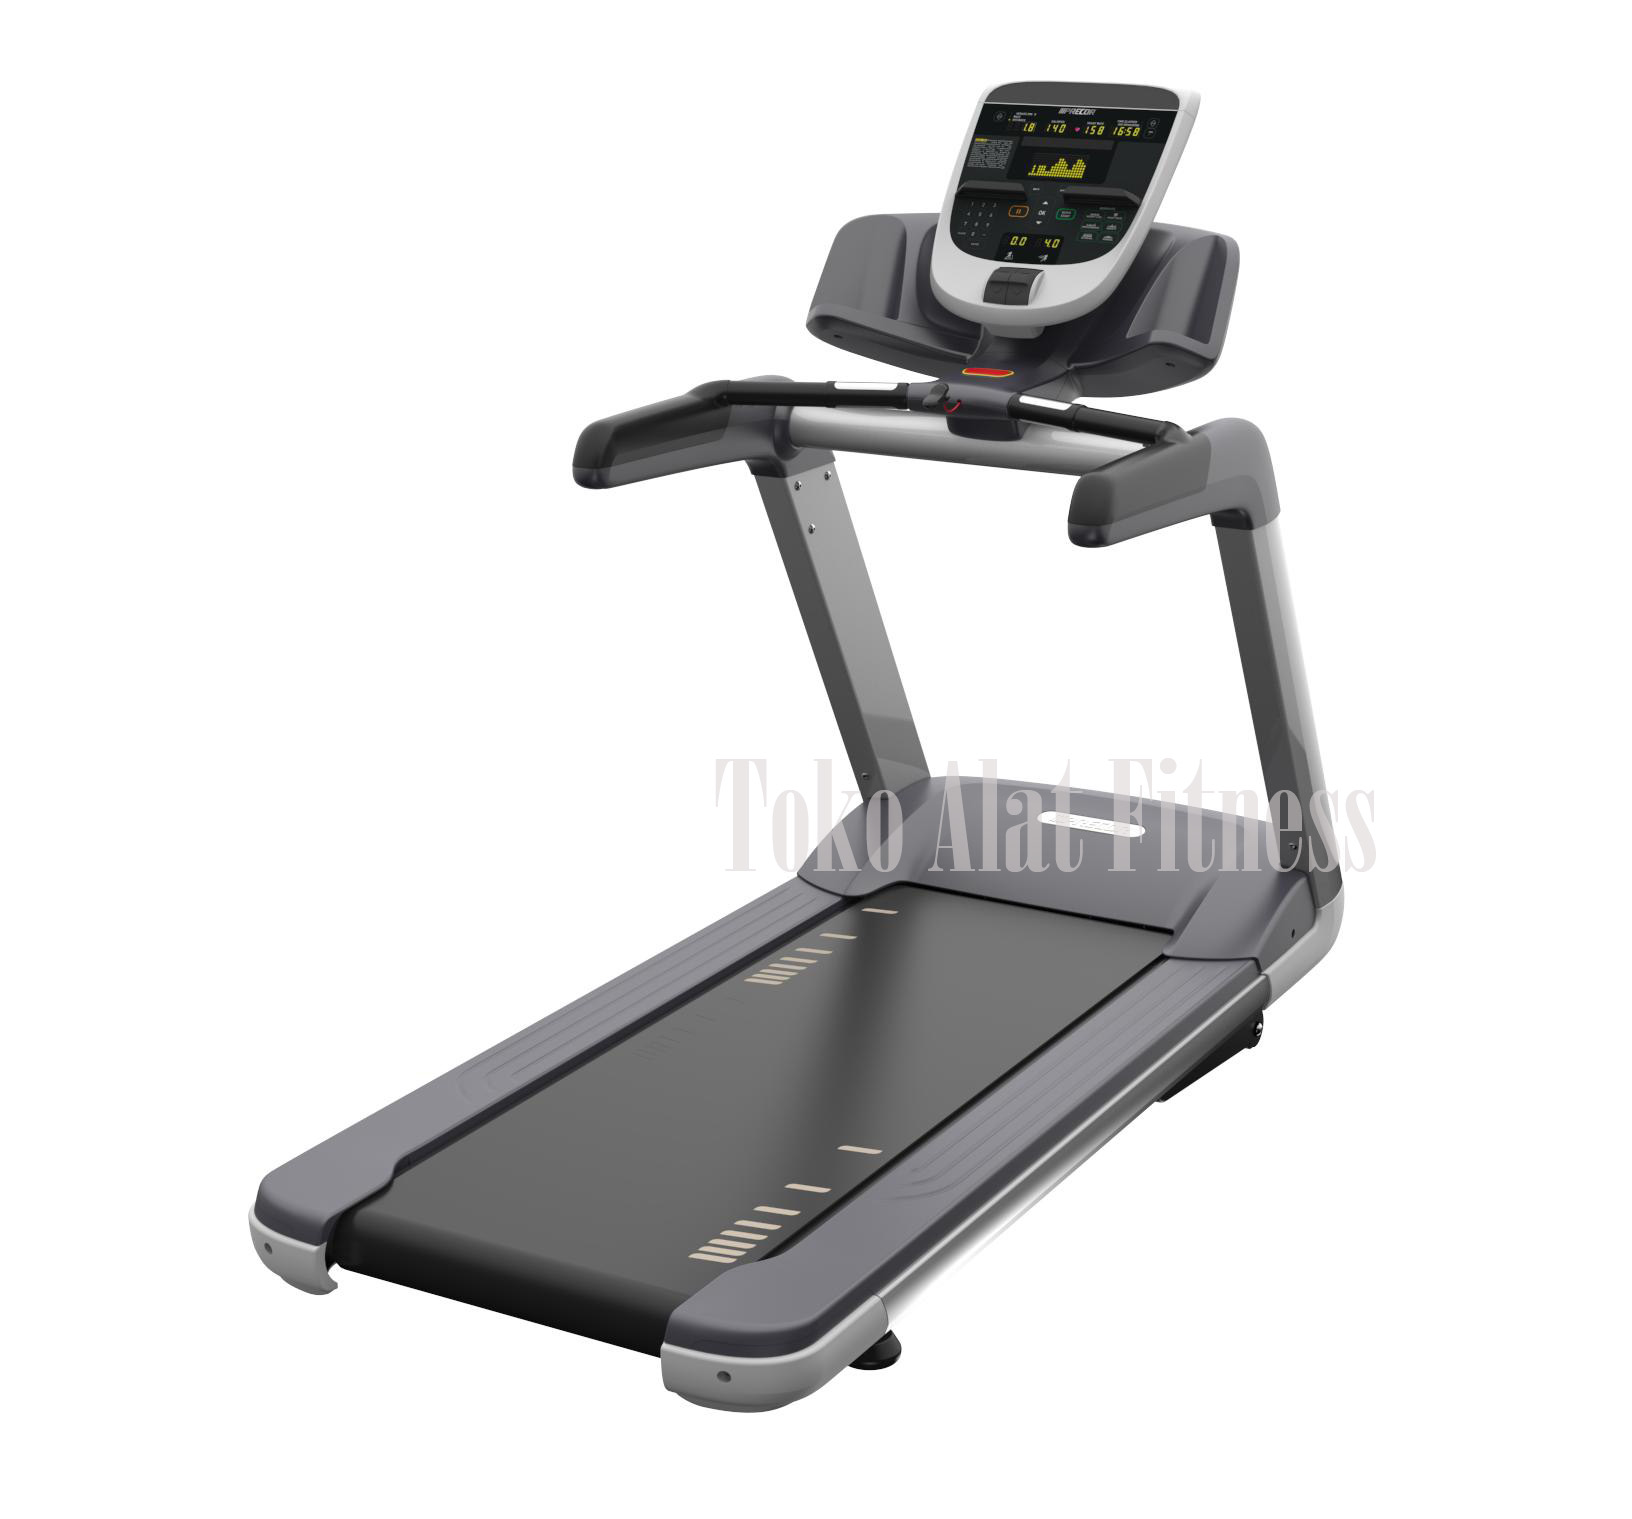 Precor Treadmill 731 wtr a - Commercial Precor Treadmill 4 HP AC TRM 731